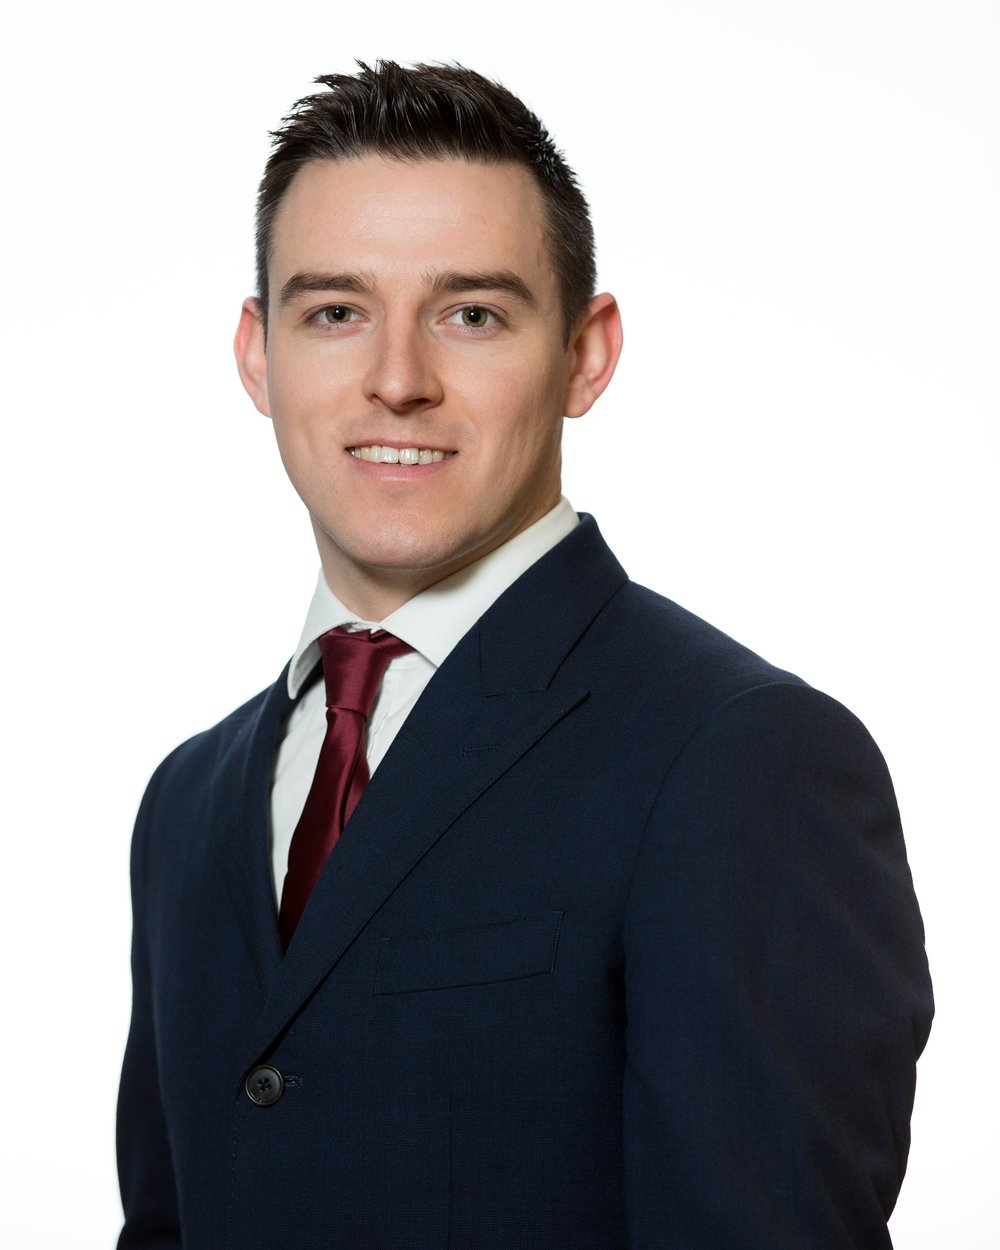 COLM BARRY - ASSOCIATE    COLM.BARRY@CSCONSULTING.IE